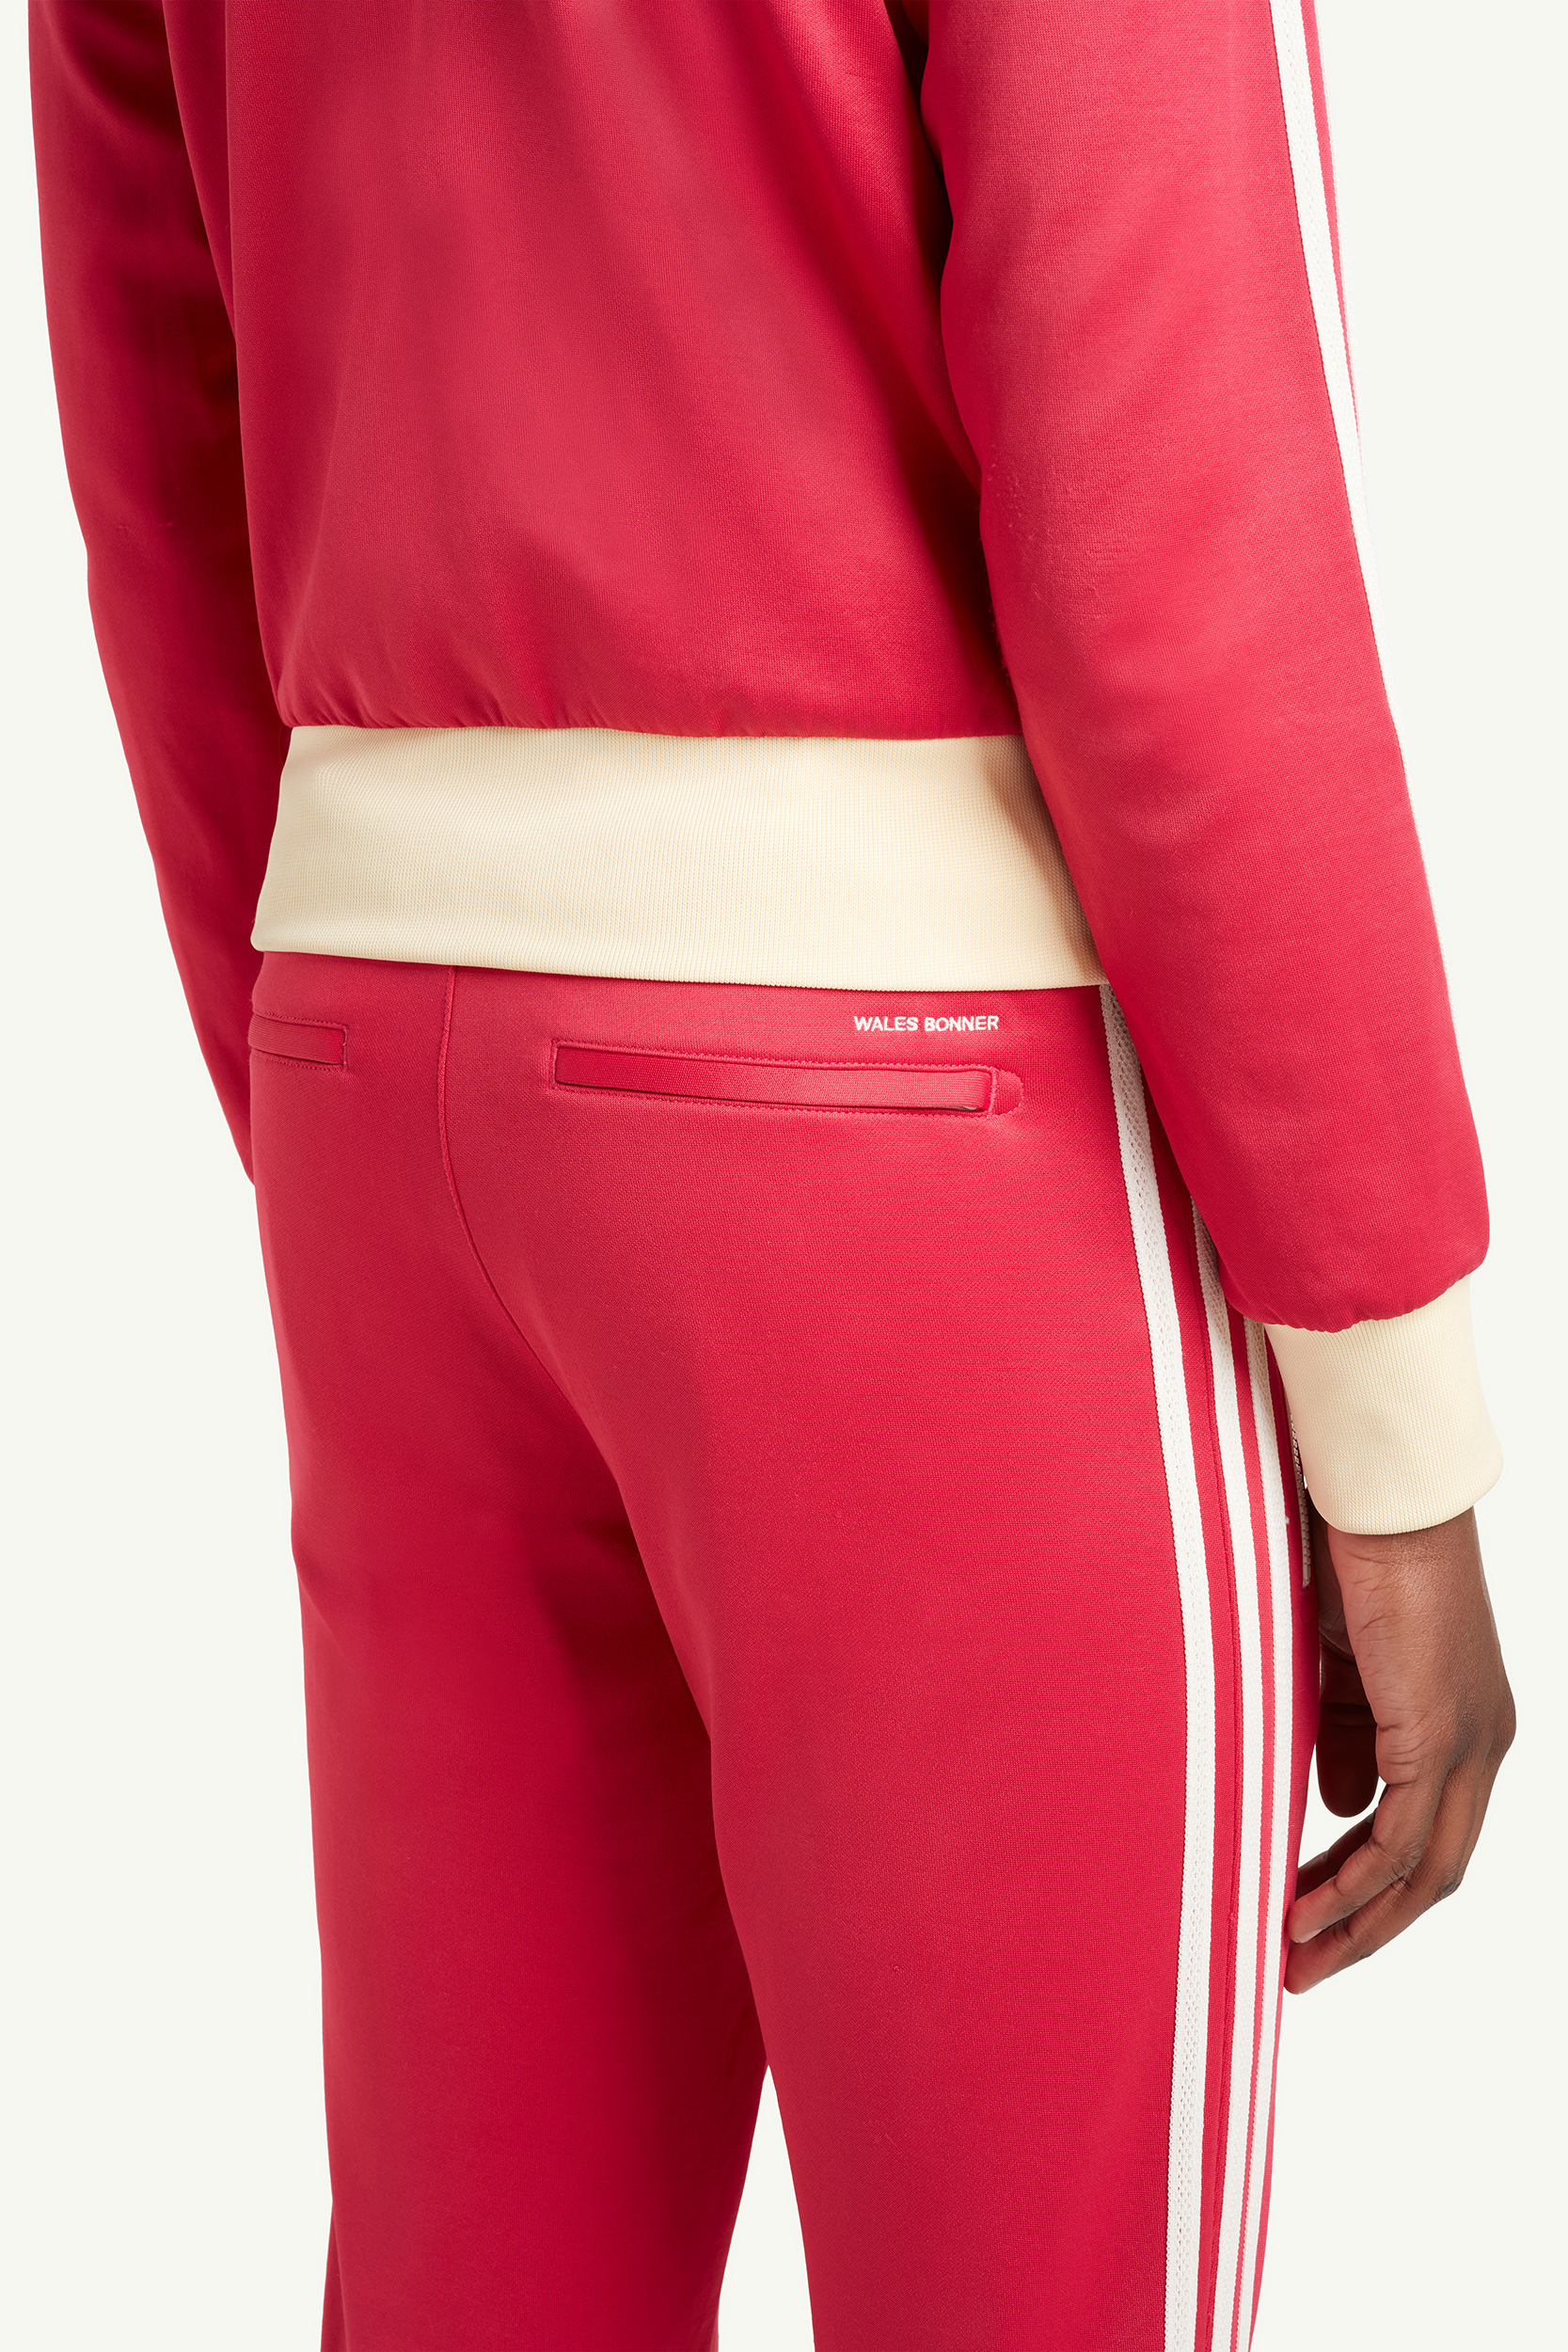 Closeup shot of detailing in the back of Menswear model wearing Wales Bonner Bright red sweat suit with white trainers | LRP